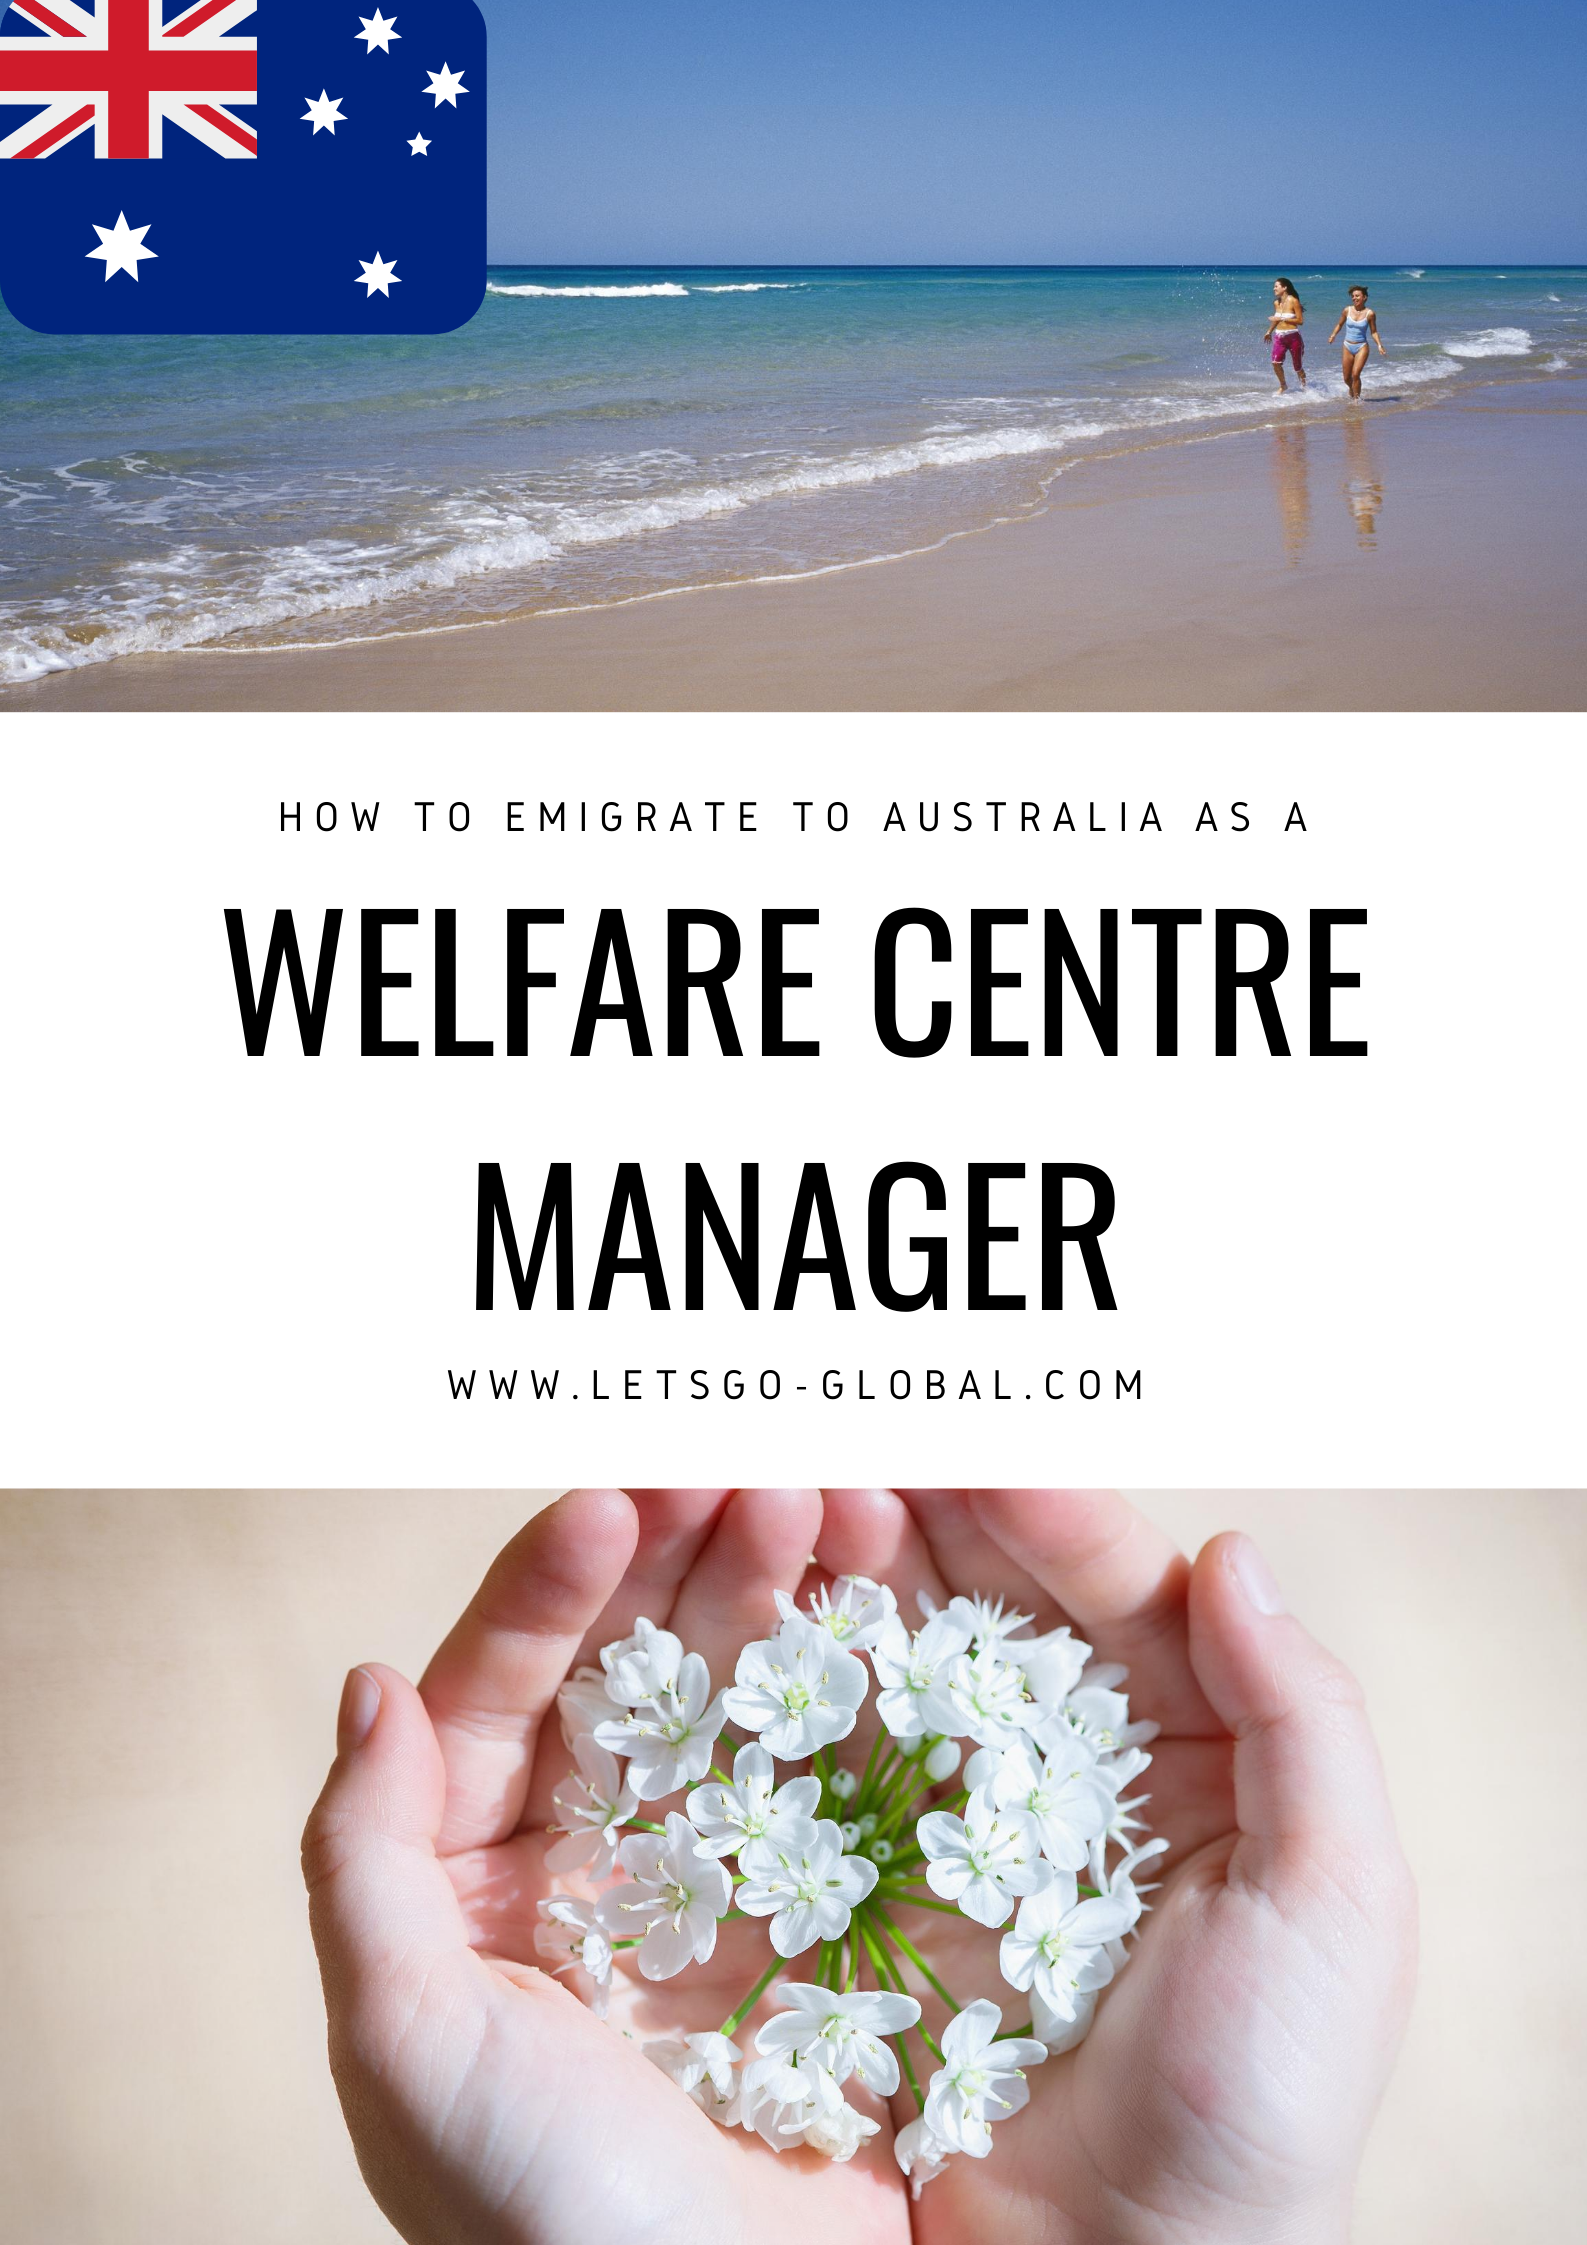 Migrate to Australia as a Welfare Centre Manager